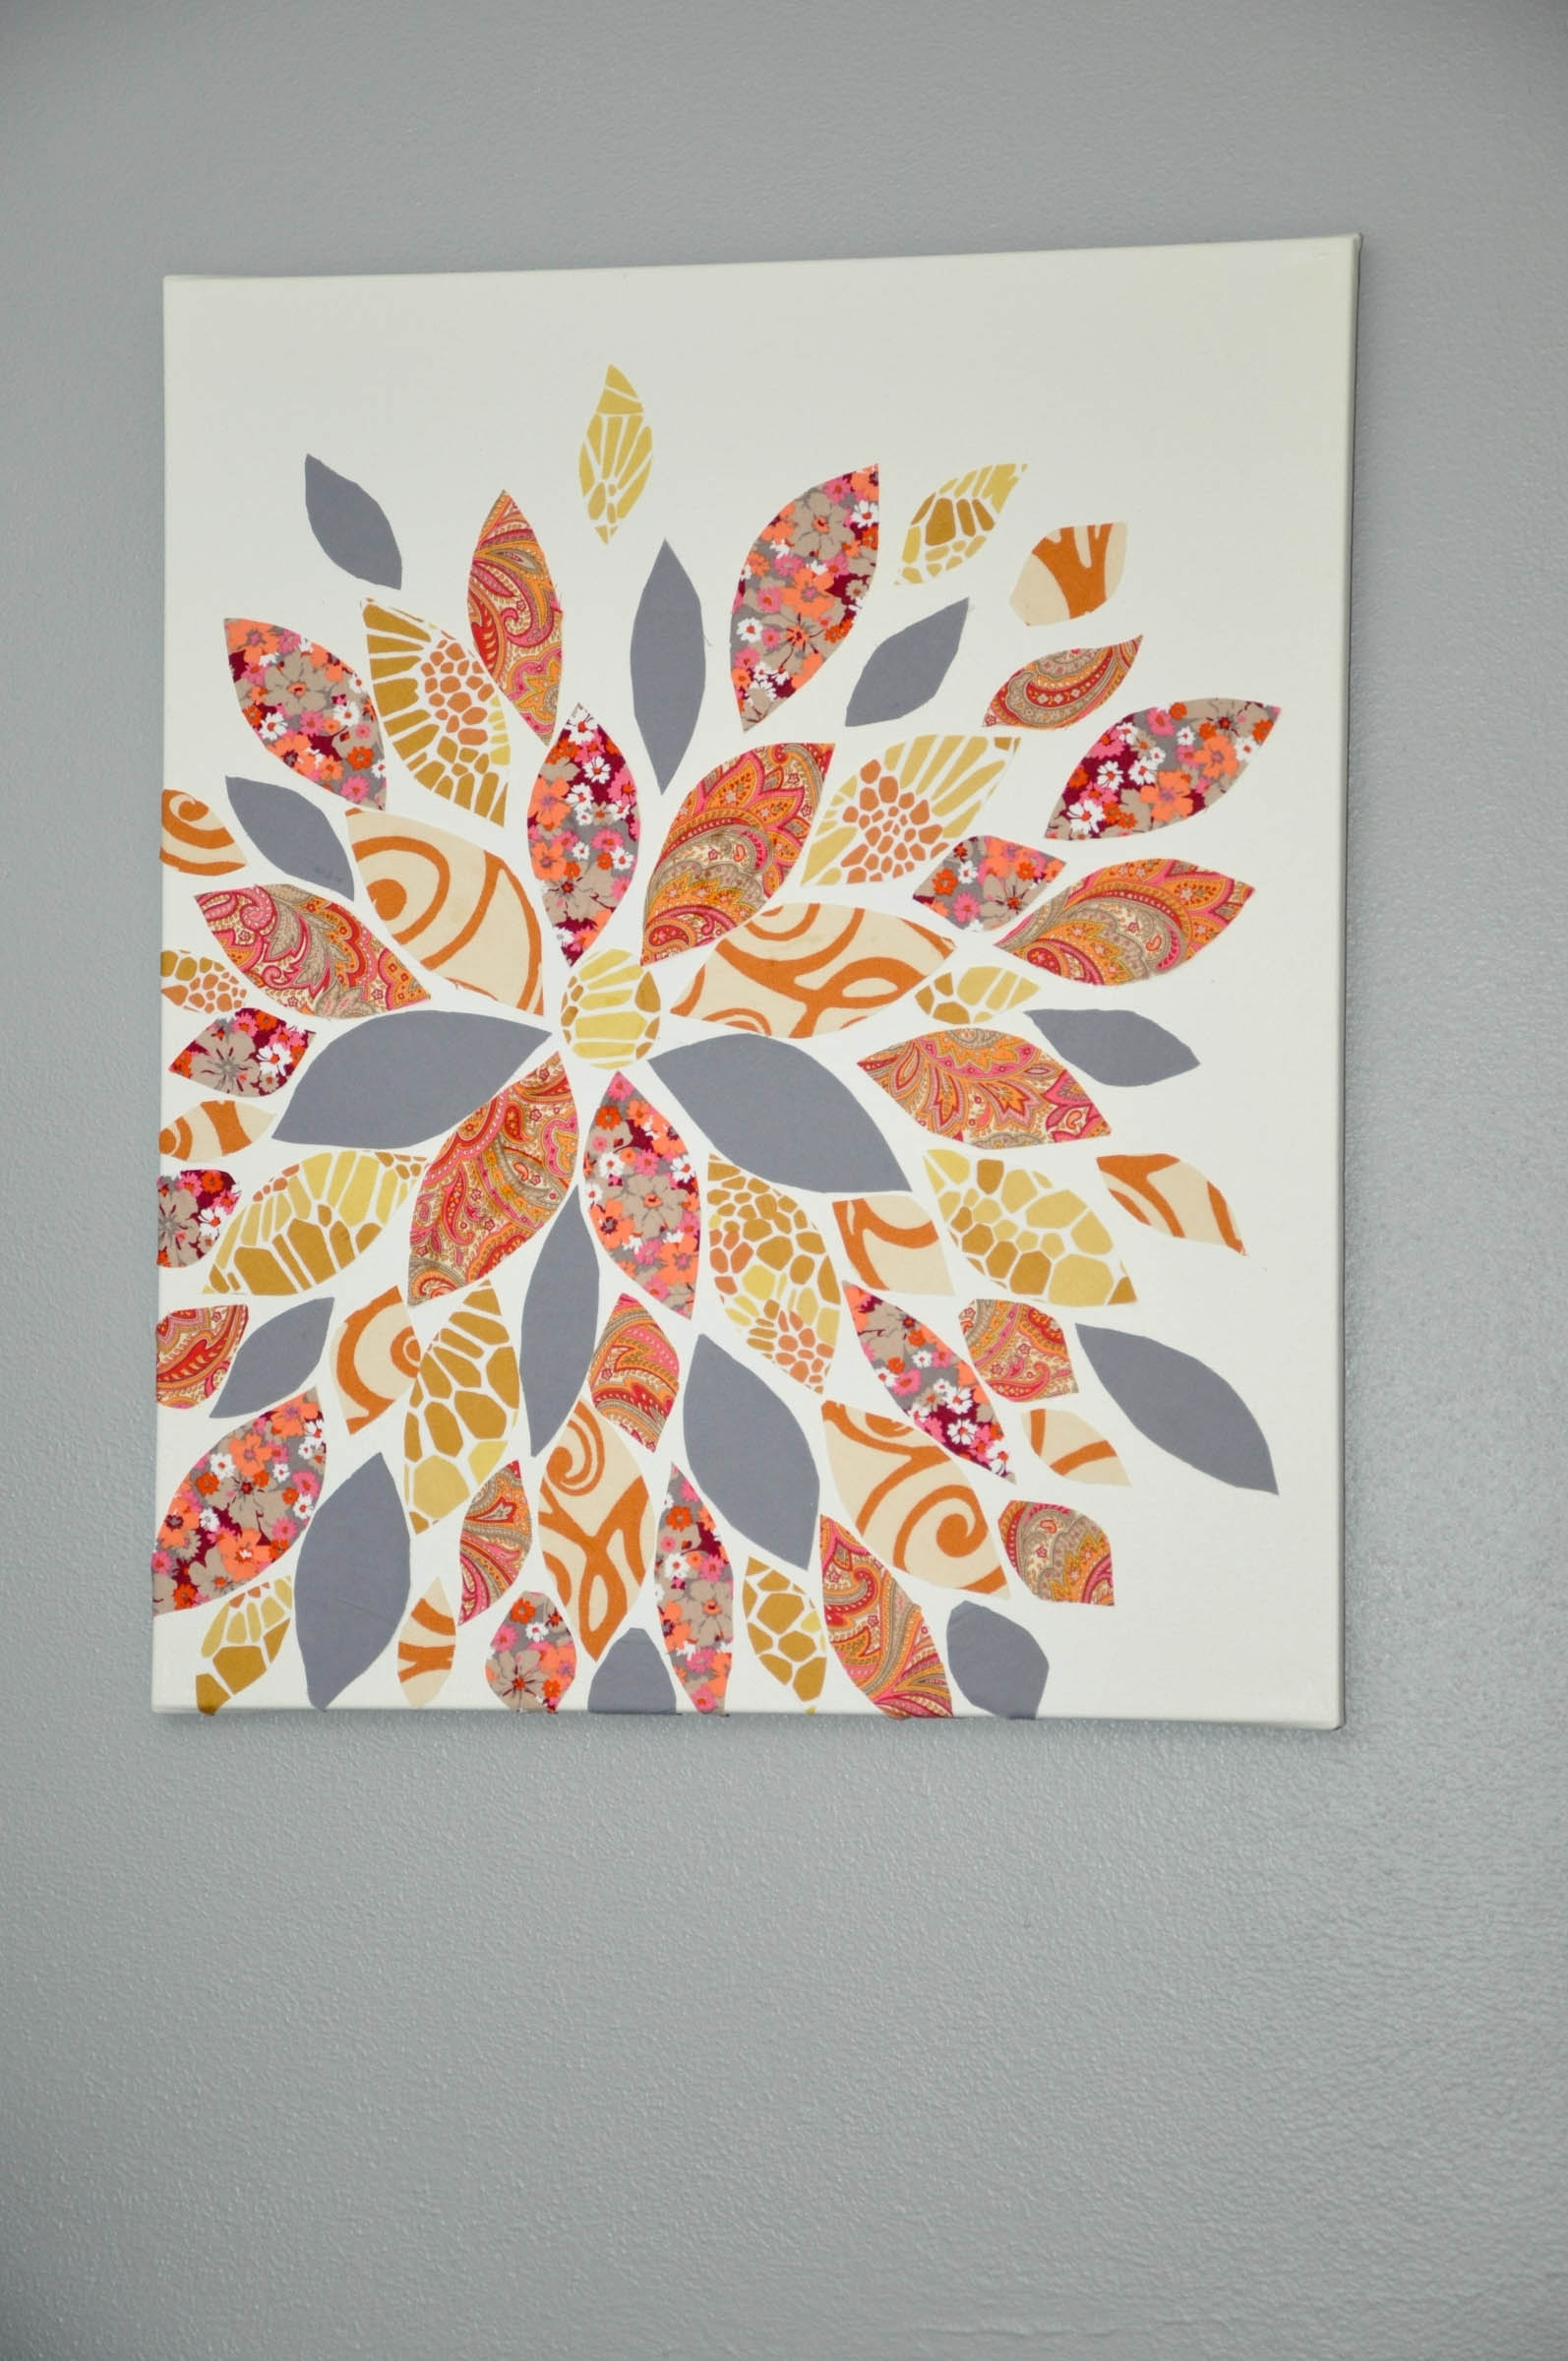 This Is So Cute And So Easy! Gosh I Can't Wait To Own My Own For Most Up To Date Fabric Scrap Wall Art (View 13 of 15)